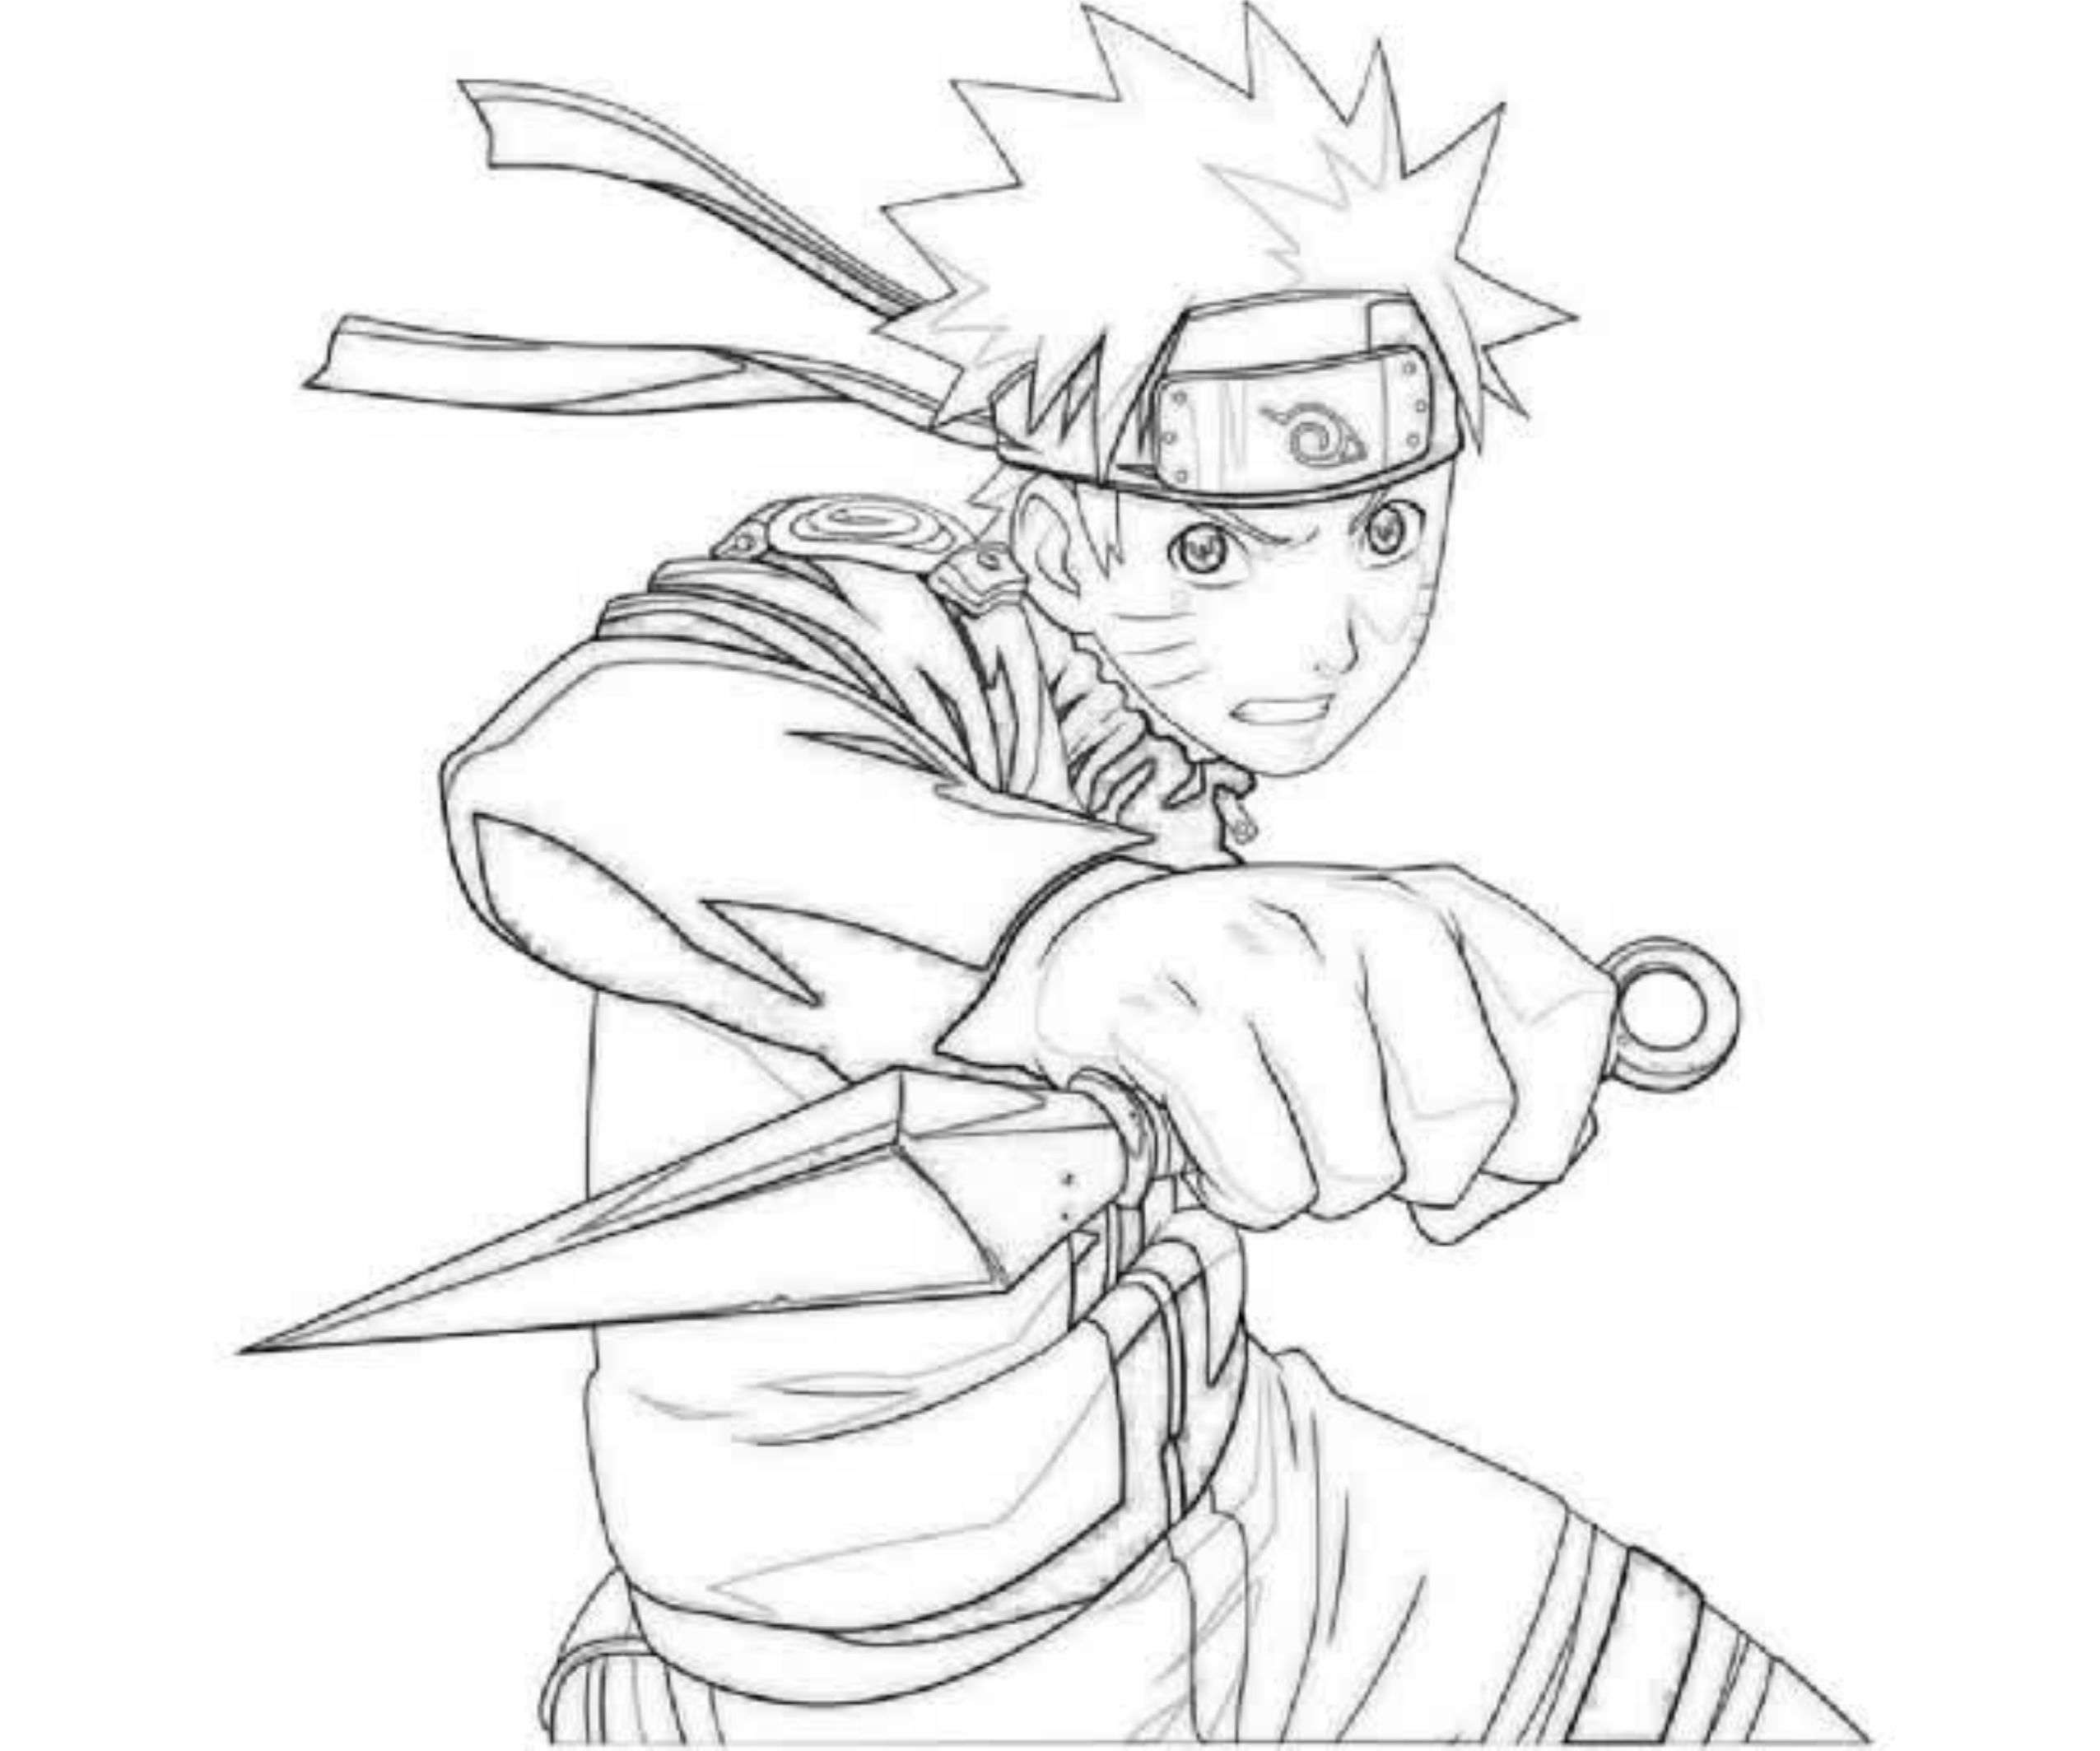 naruto shippuden coloring book printable naruto coloring pages to get your kids occupied coloring naruto shippuden book